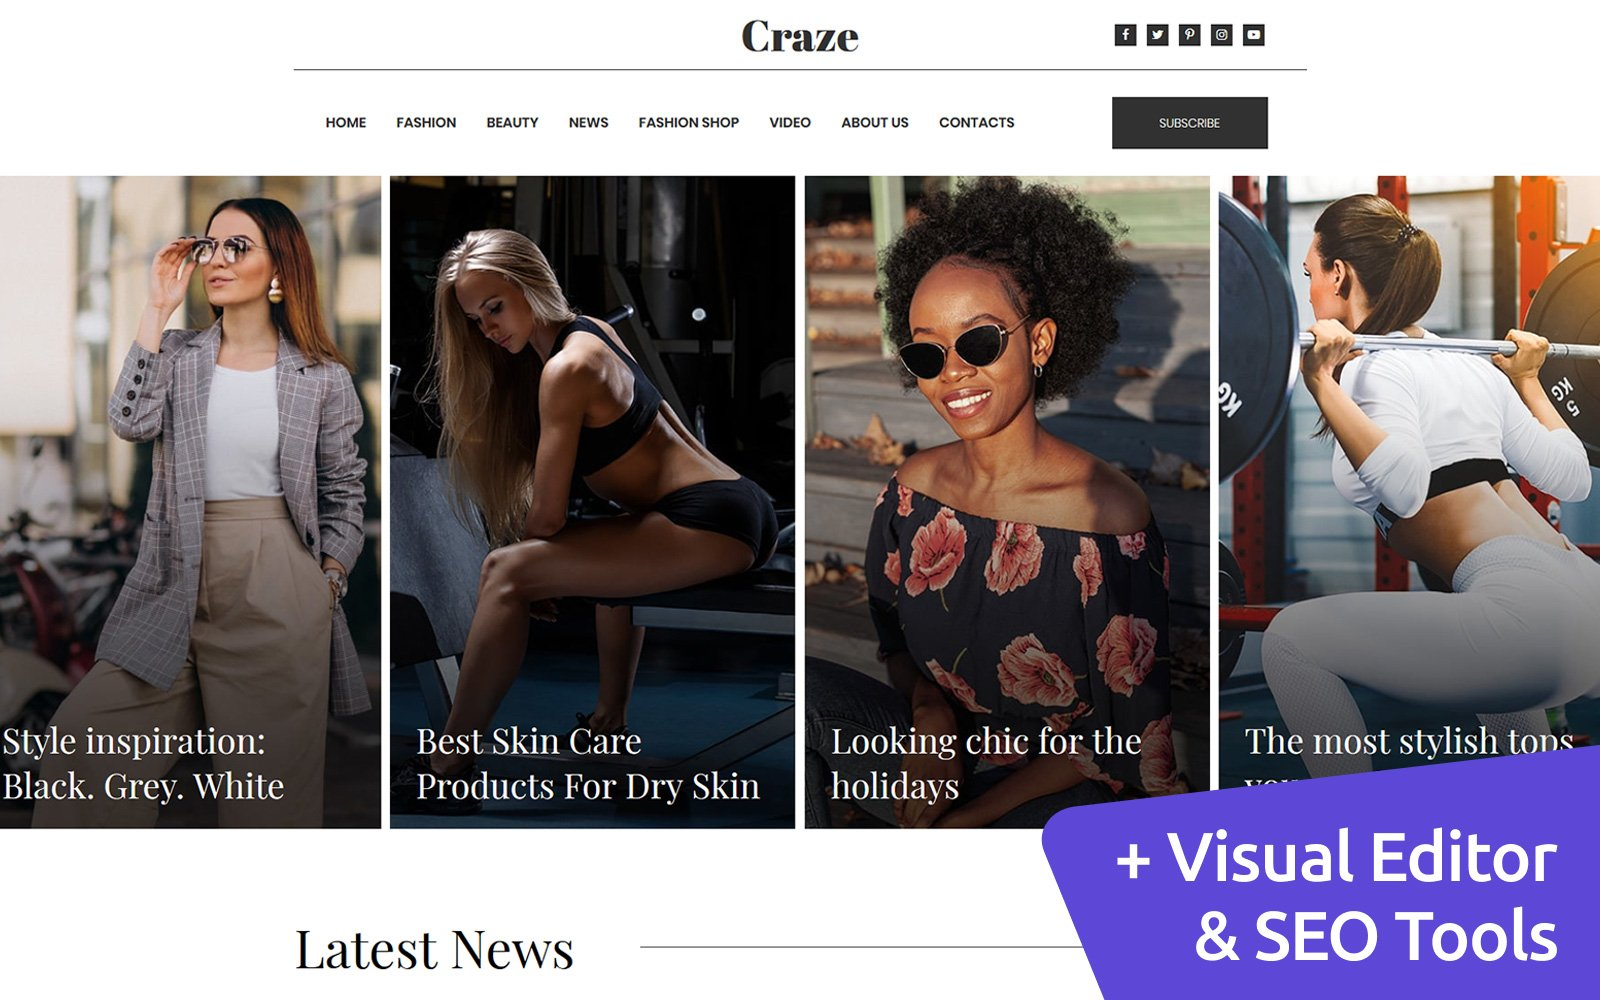 Craze - Online Fashion Magazine Templates Moto CMS 3 №99503